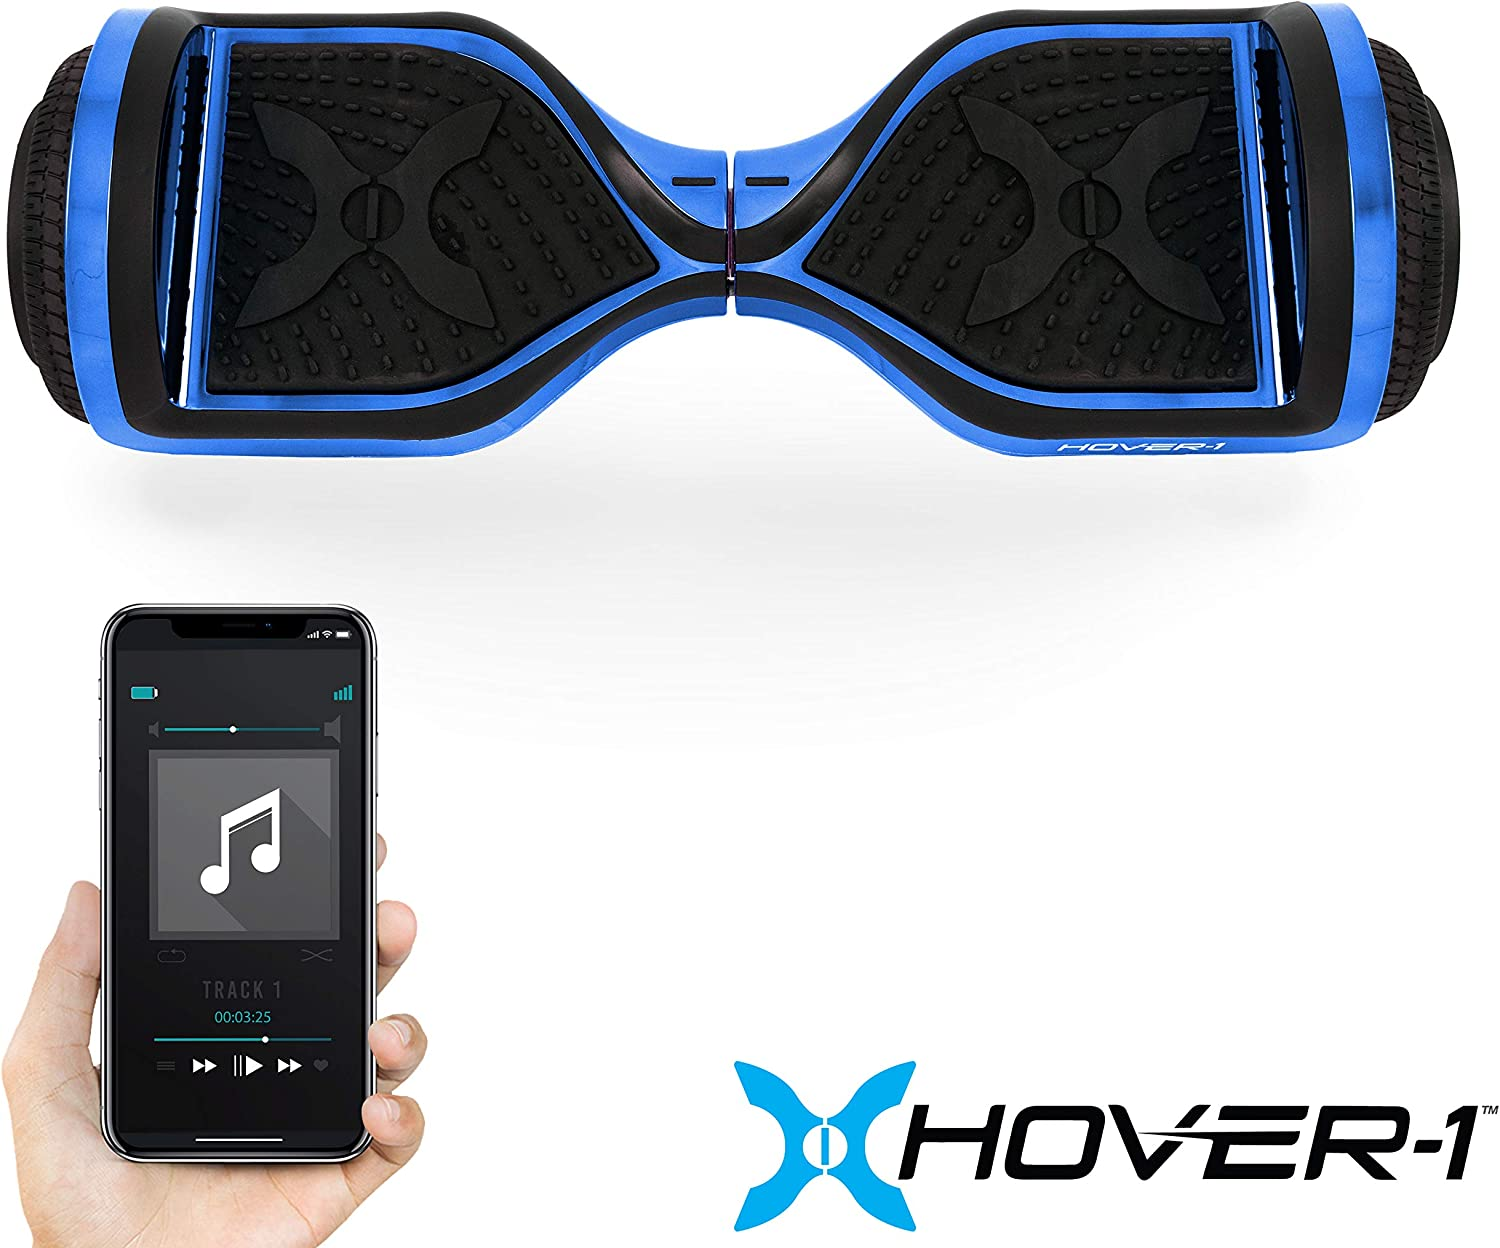 Hover-1 Chrome Electric Hoverboard Scooter Blue - 4